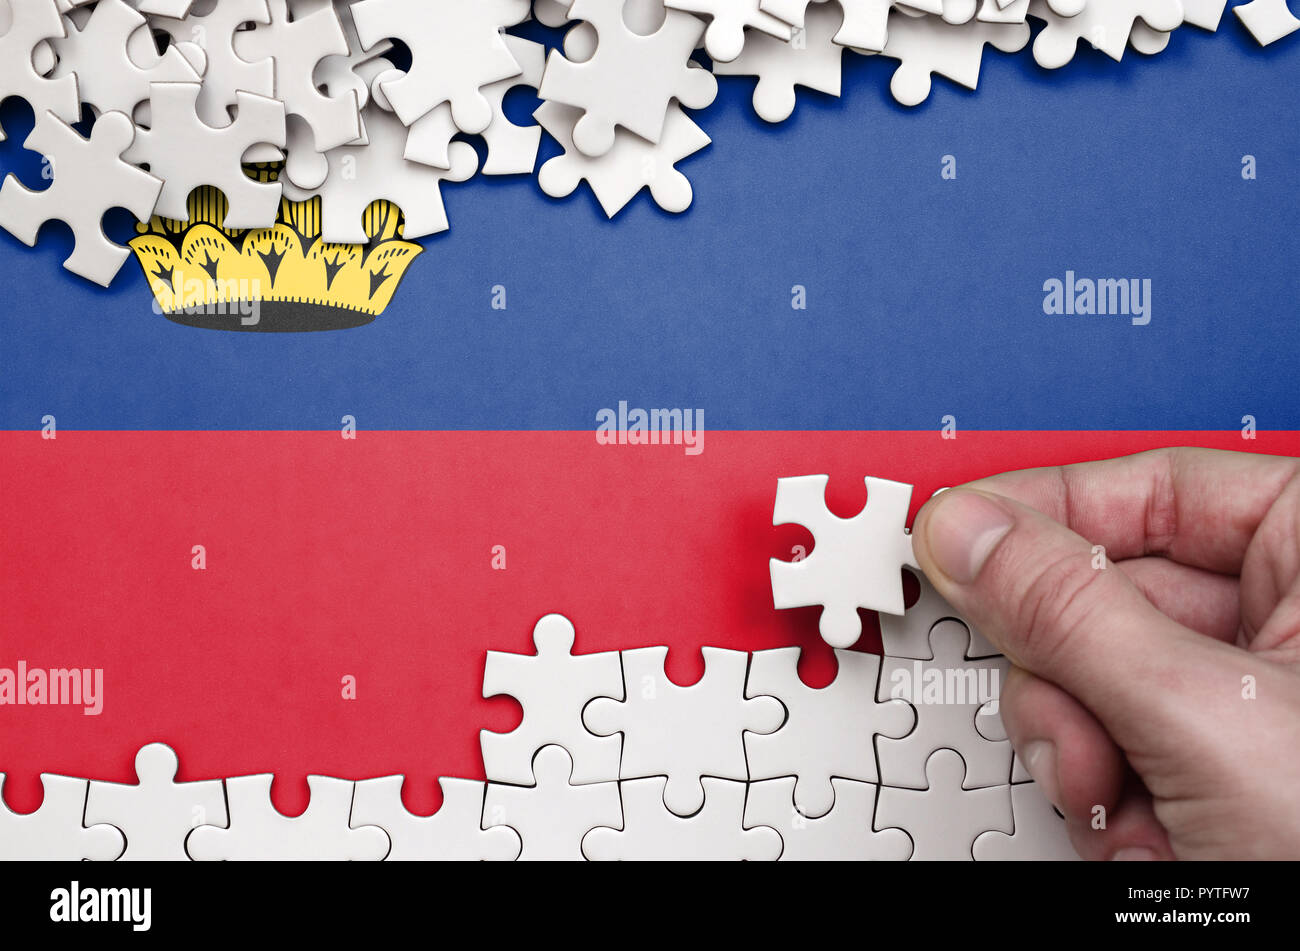 Liechtenstein flag  is depicted on a table on which the human hand folds a puzzle of white color. Stock Photo